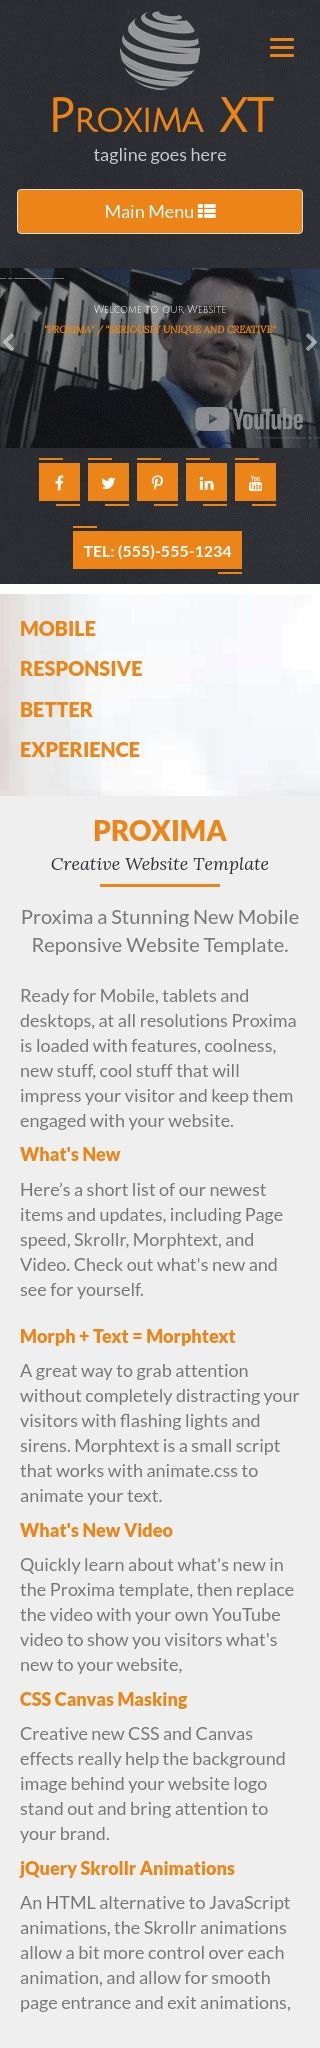 Mobile: Accounting Frontpage Template